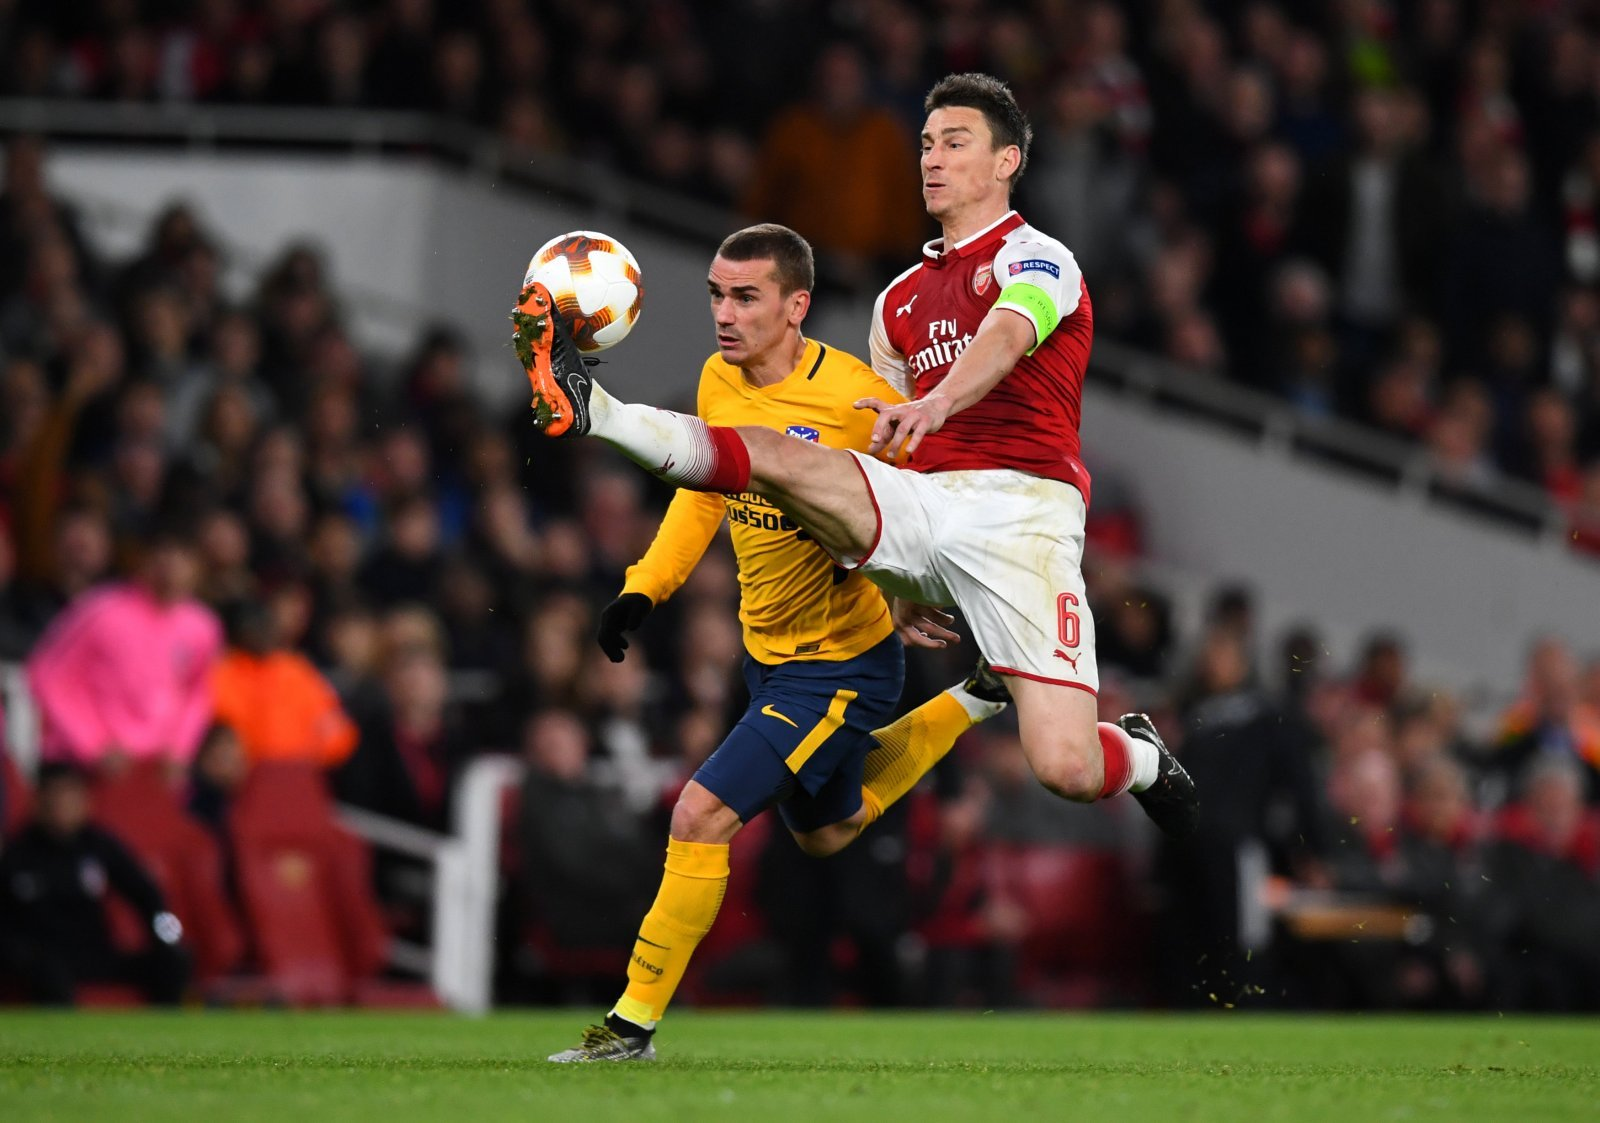 75% of polled fans think Laurent Koscielny has a future at Arsenal